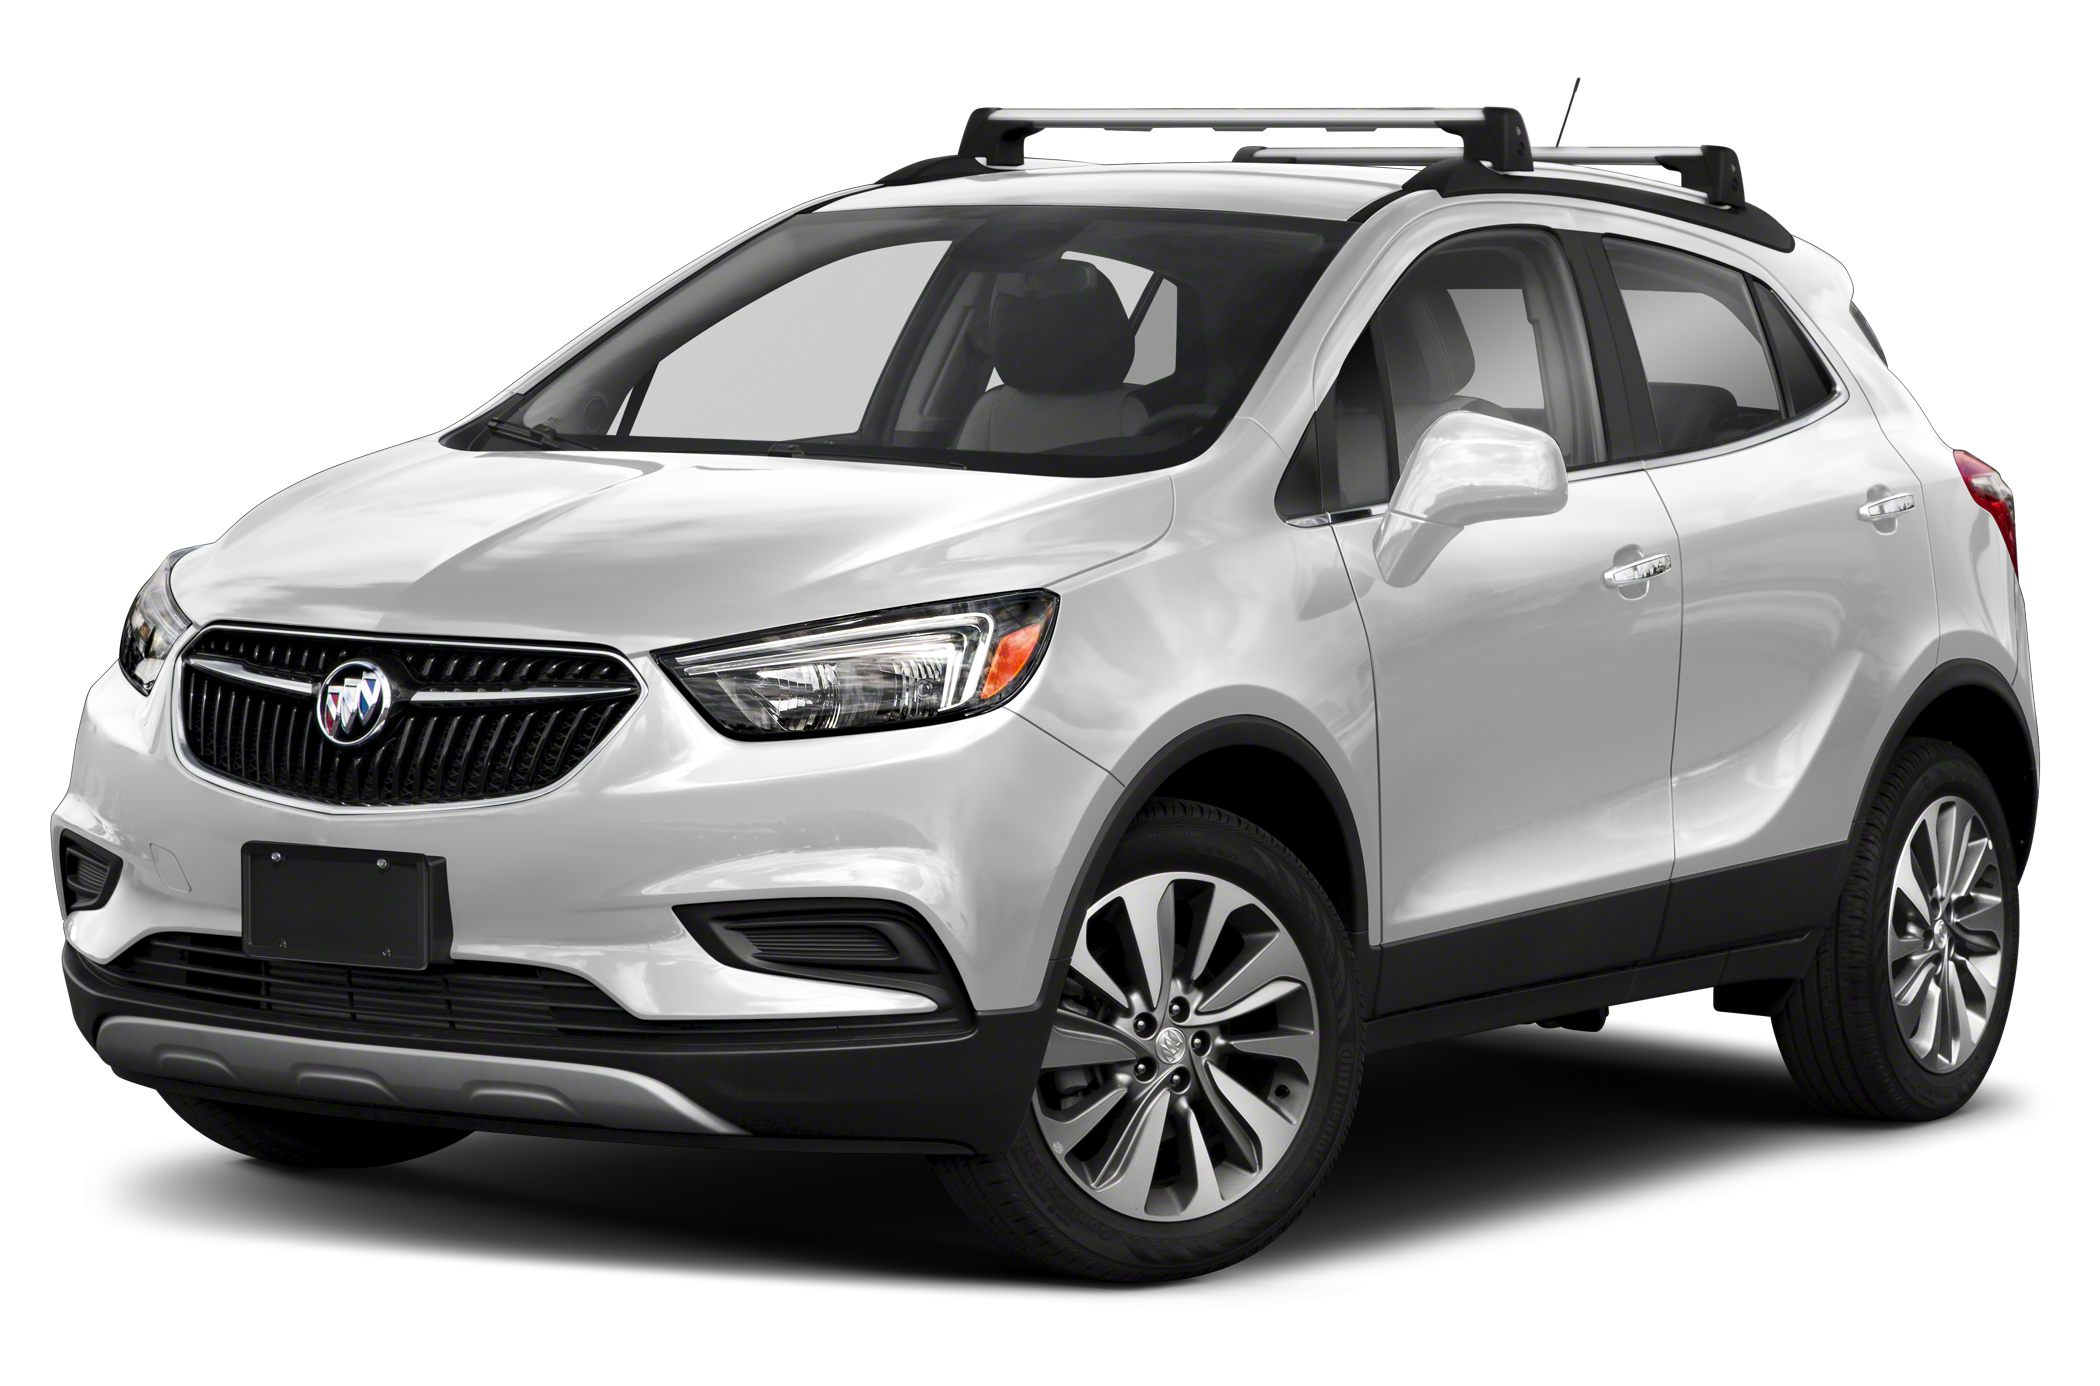 2020 Buick Encore Specs And Prices 2021 Buick Encore Configurations, Dimensions, Deals